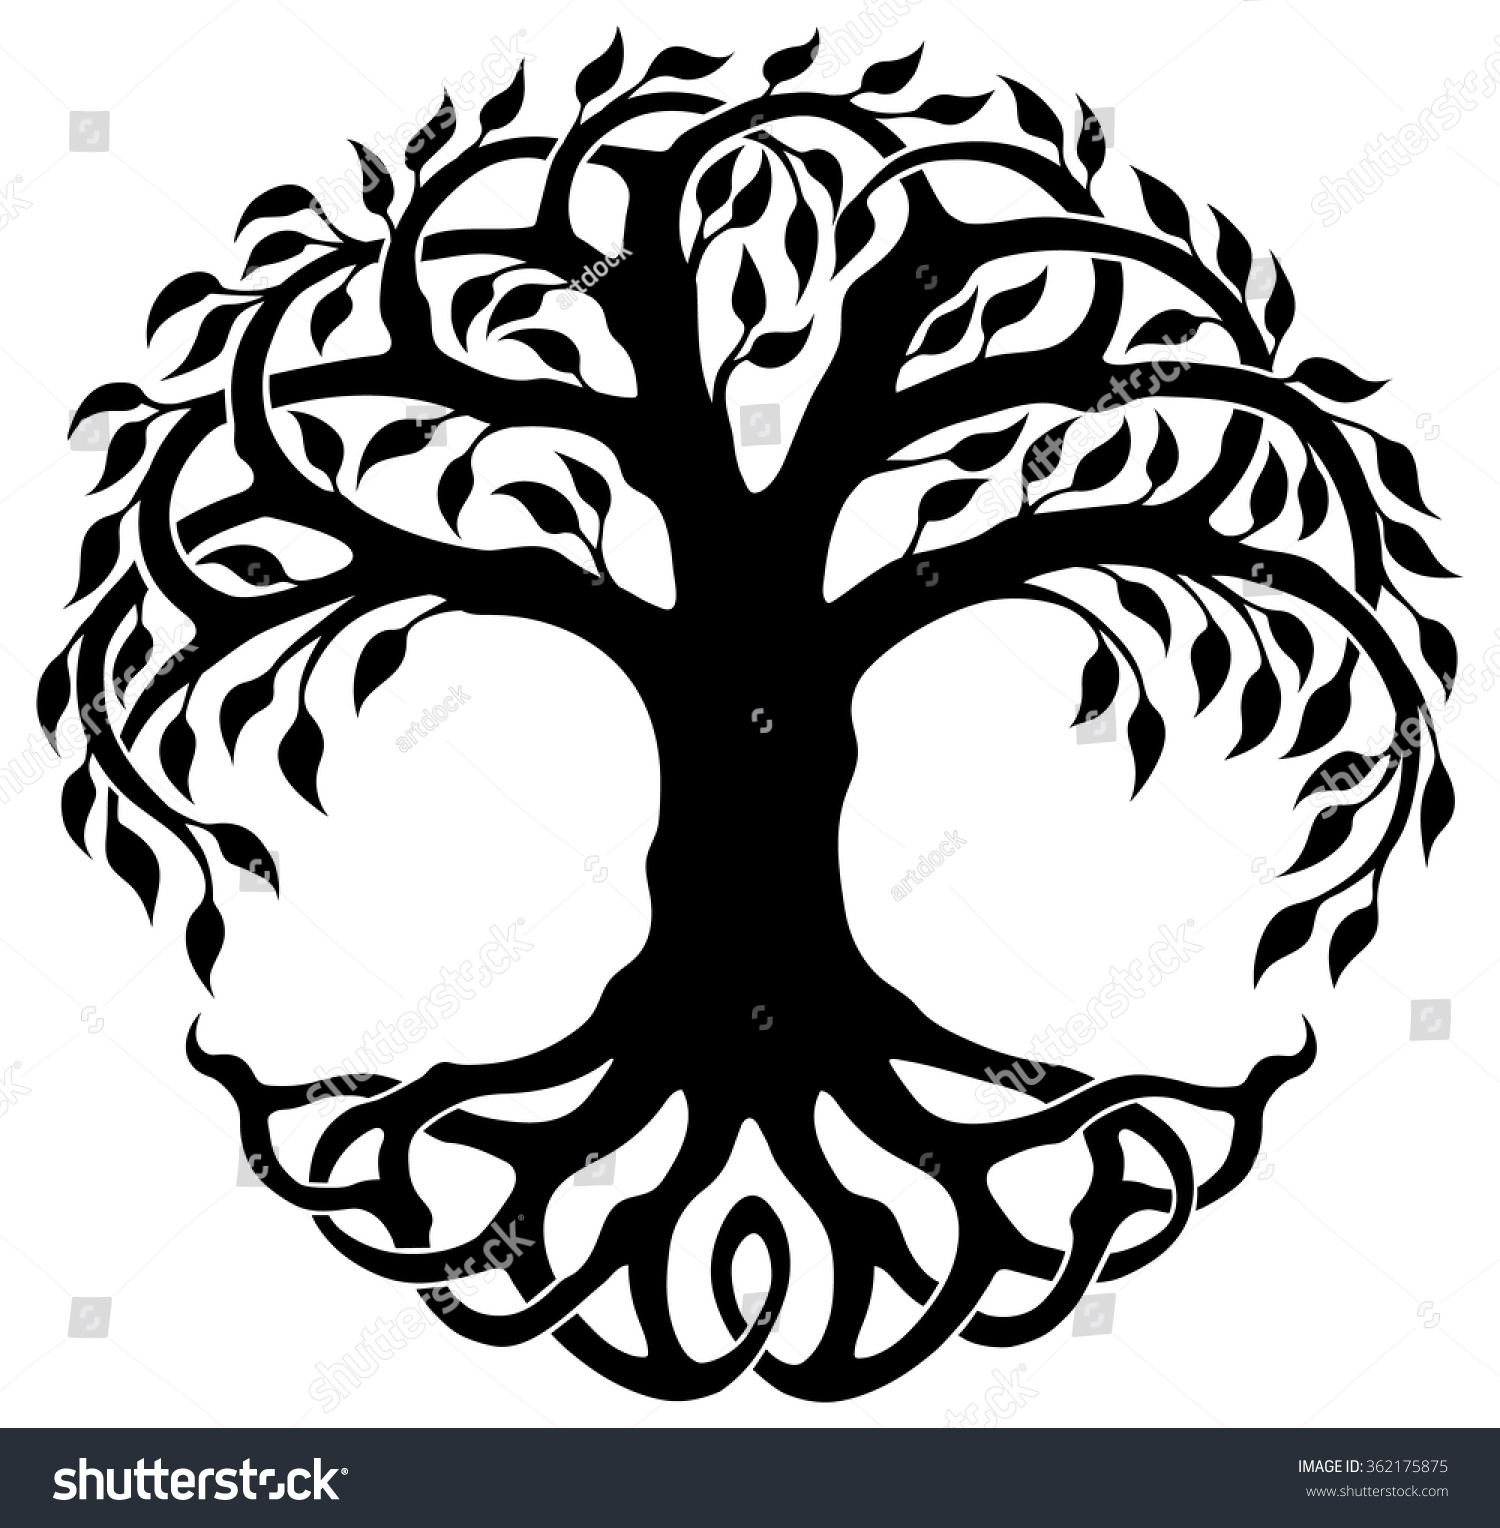 vector ornament decorative celtic tree life stock vector 2018 rh shutterstock com tree of life vector free download tree of life vector download